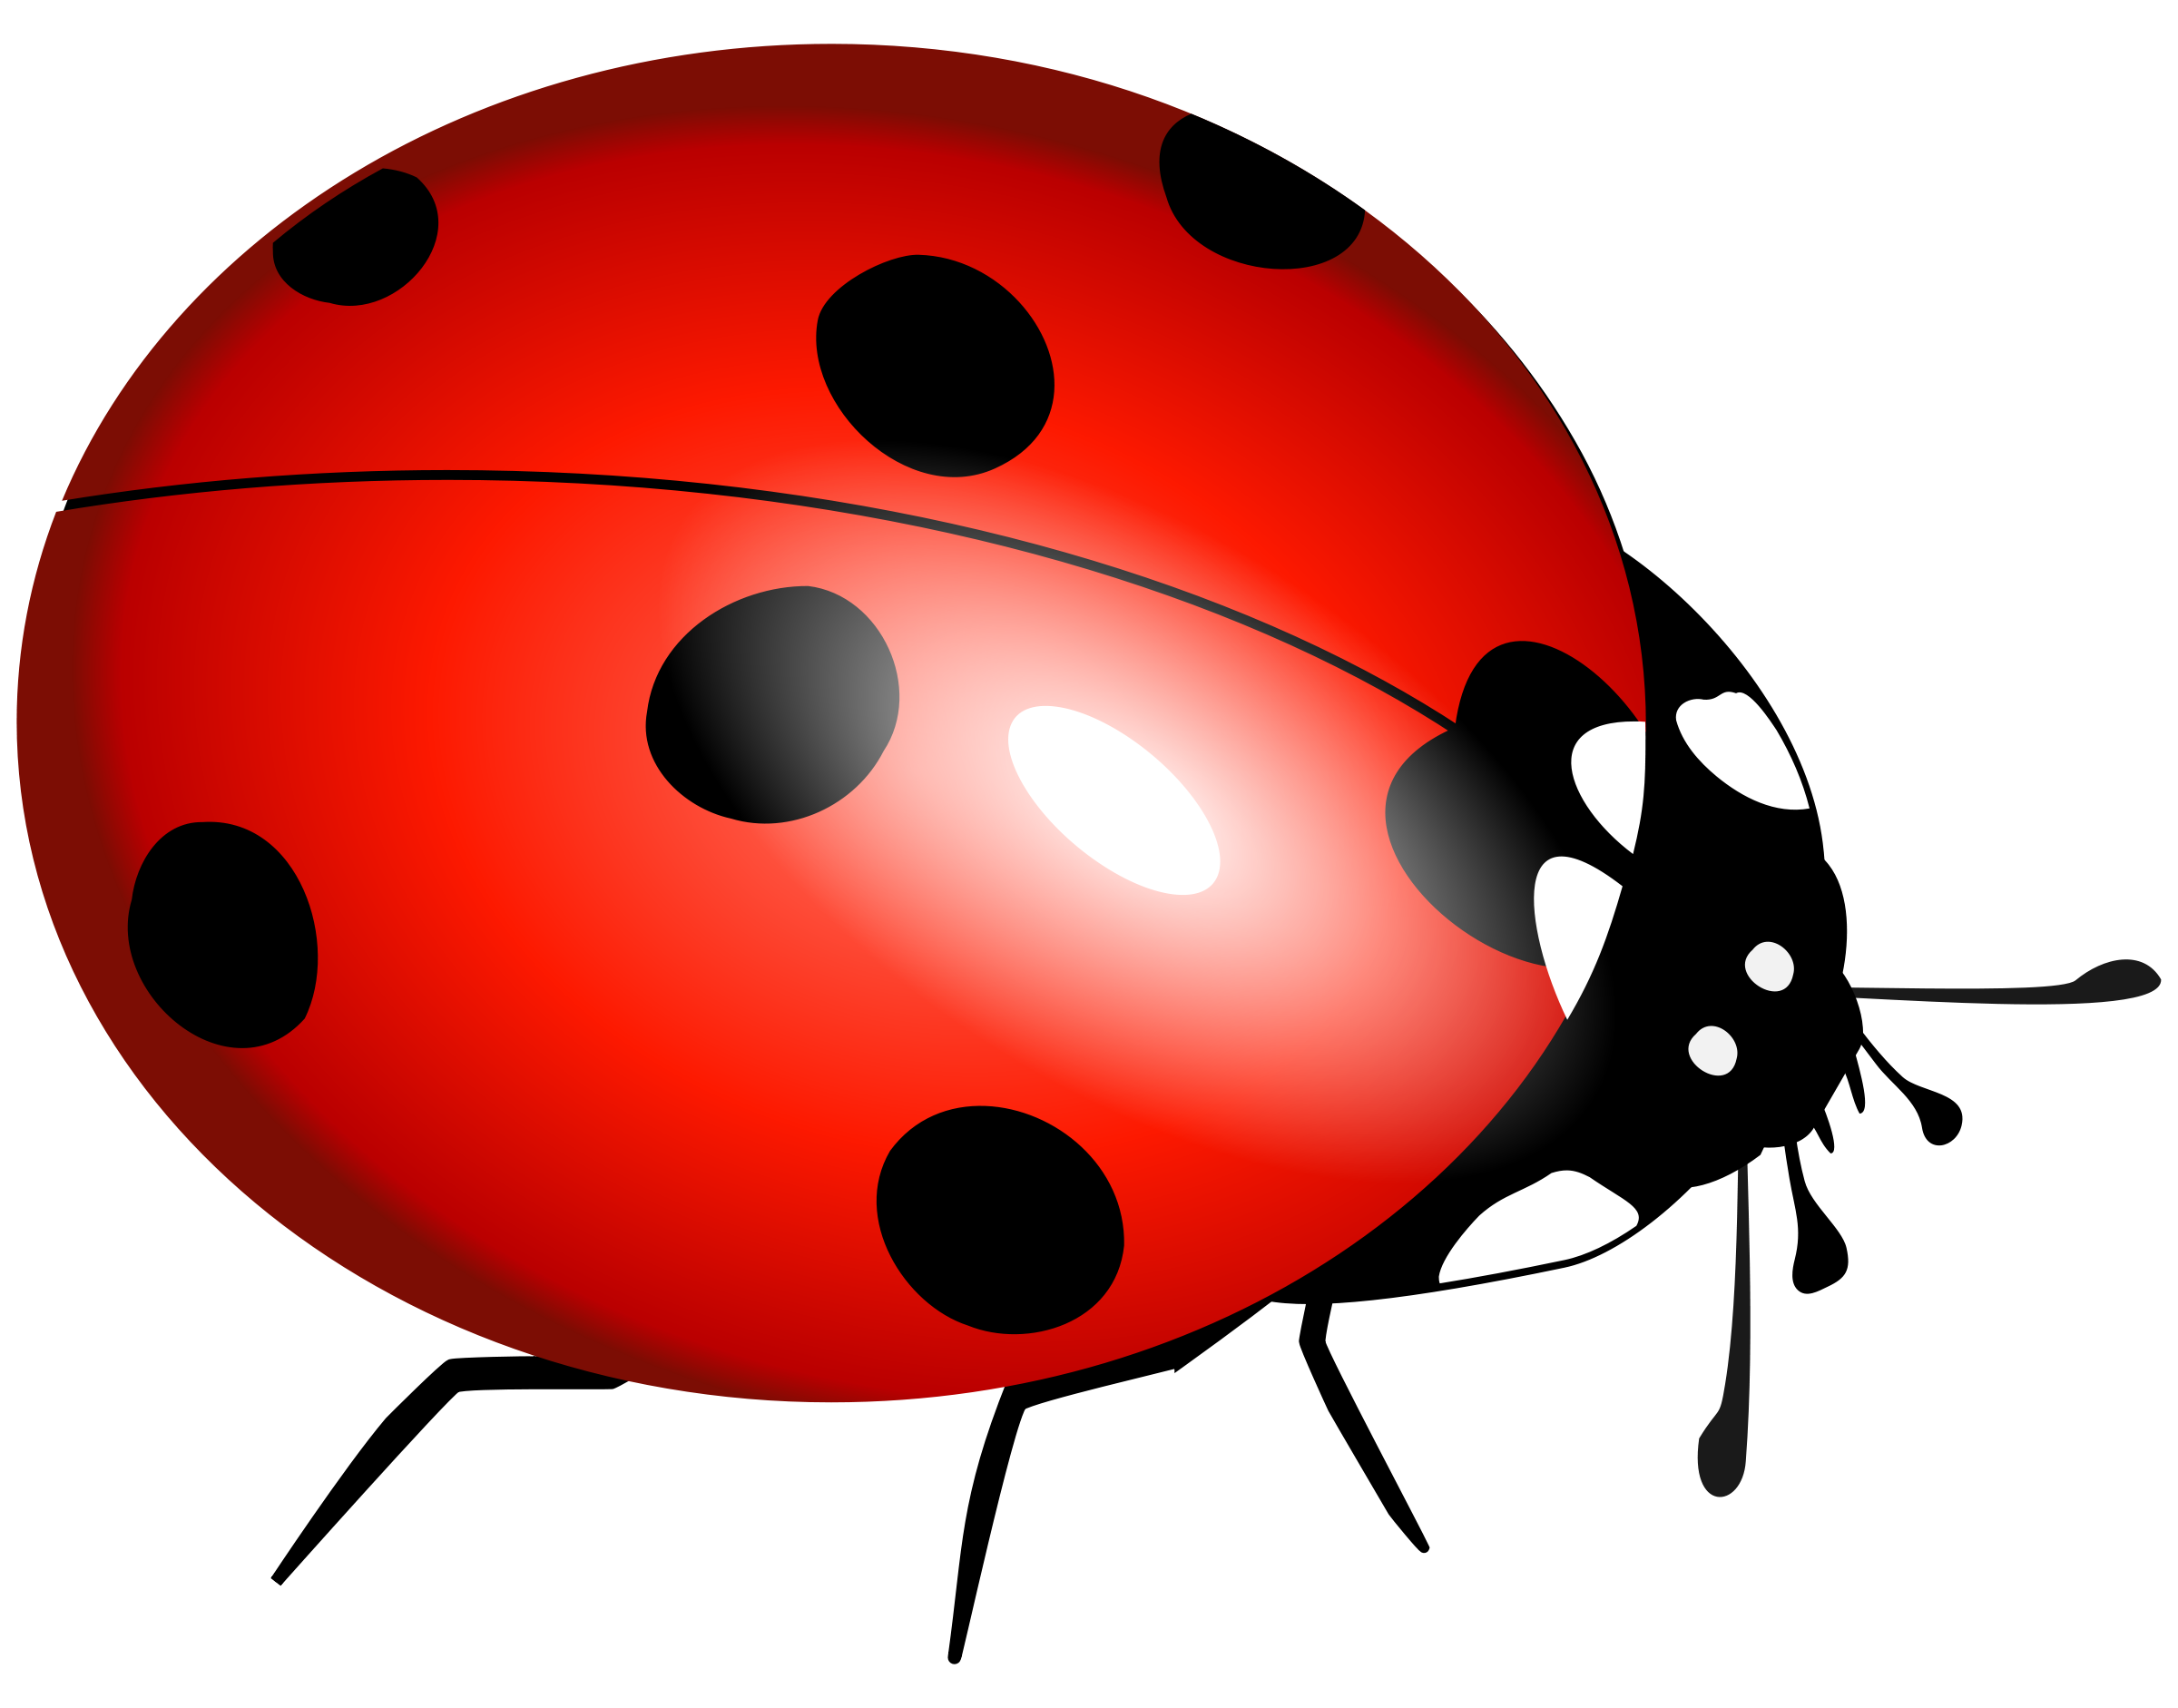 Ladybug clipart one object. Isolated stock photo by